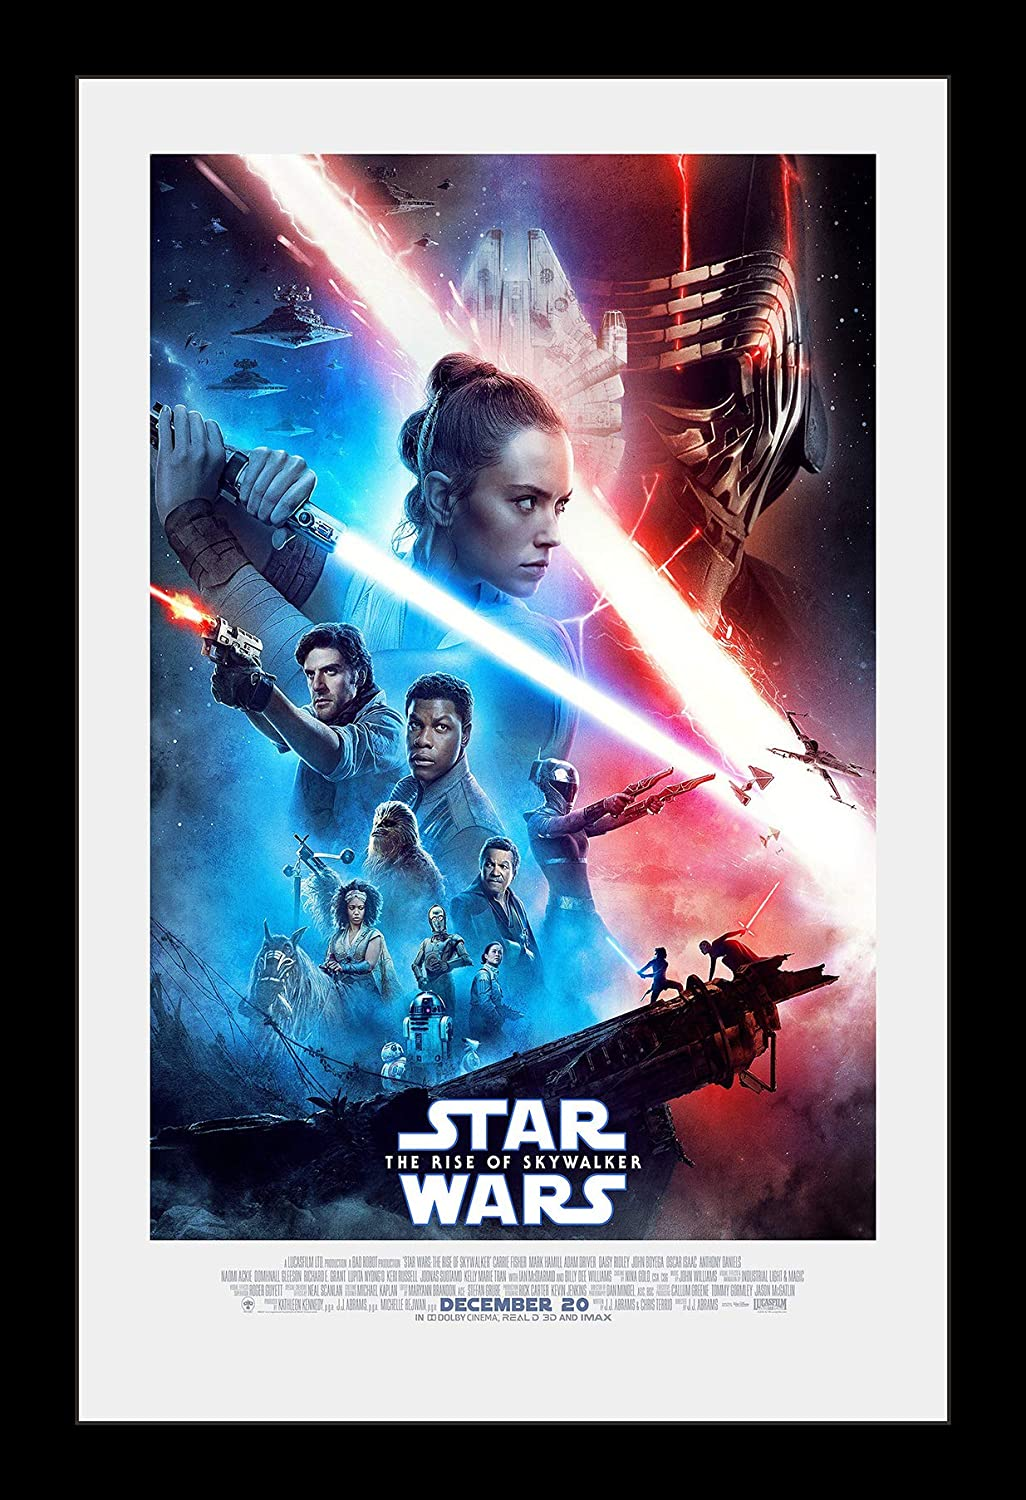 Wallspace 11x17 Framed Washington Mall Movie Poster - The of Wars Star Sales for sale Skyw Rise